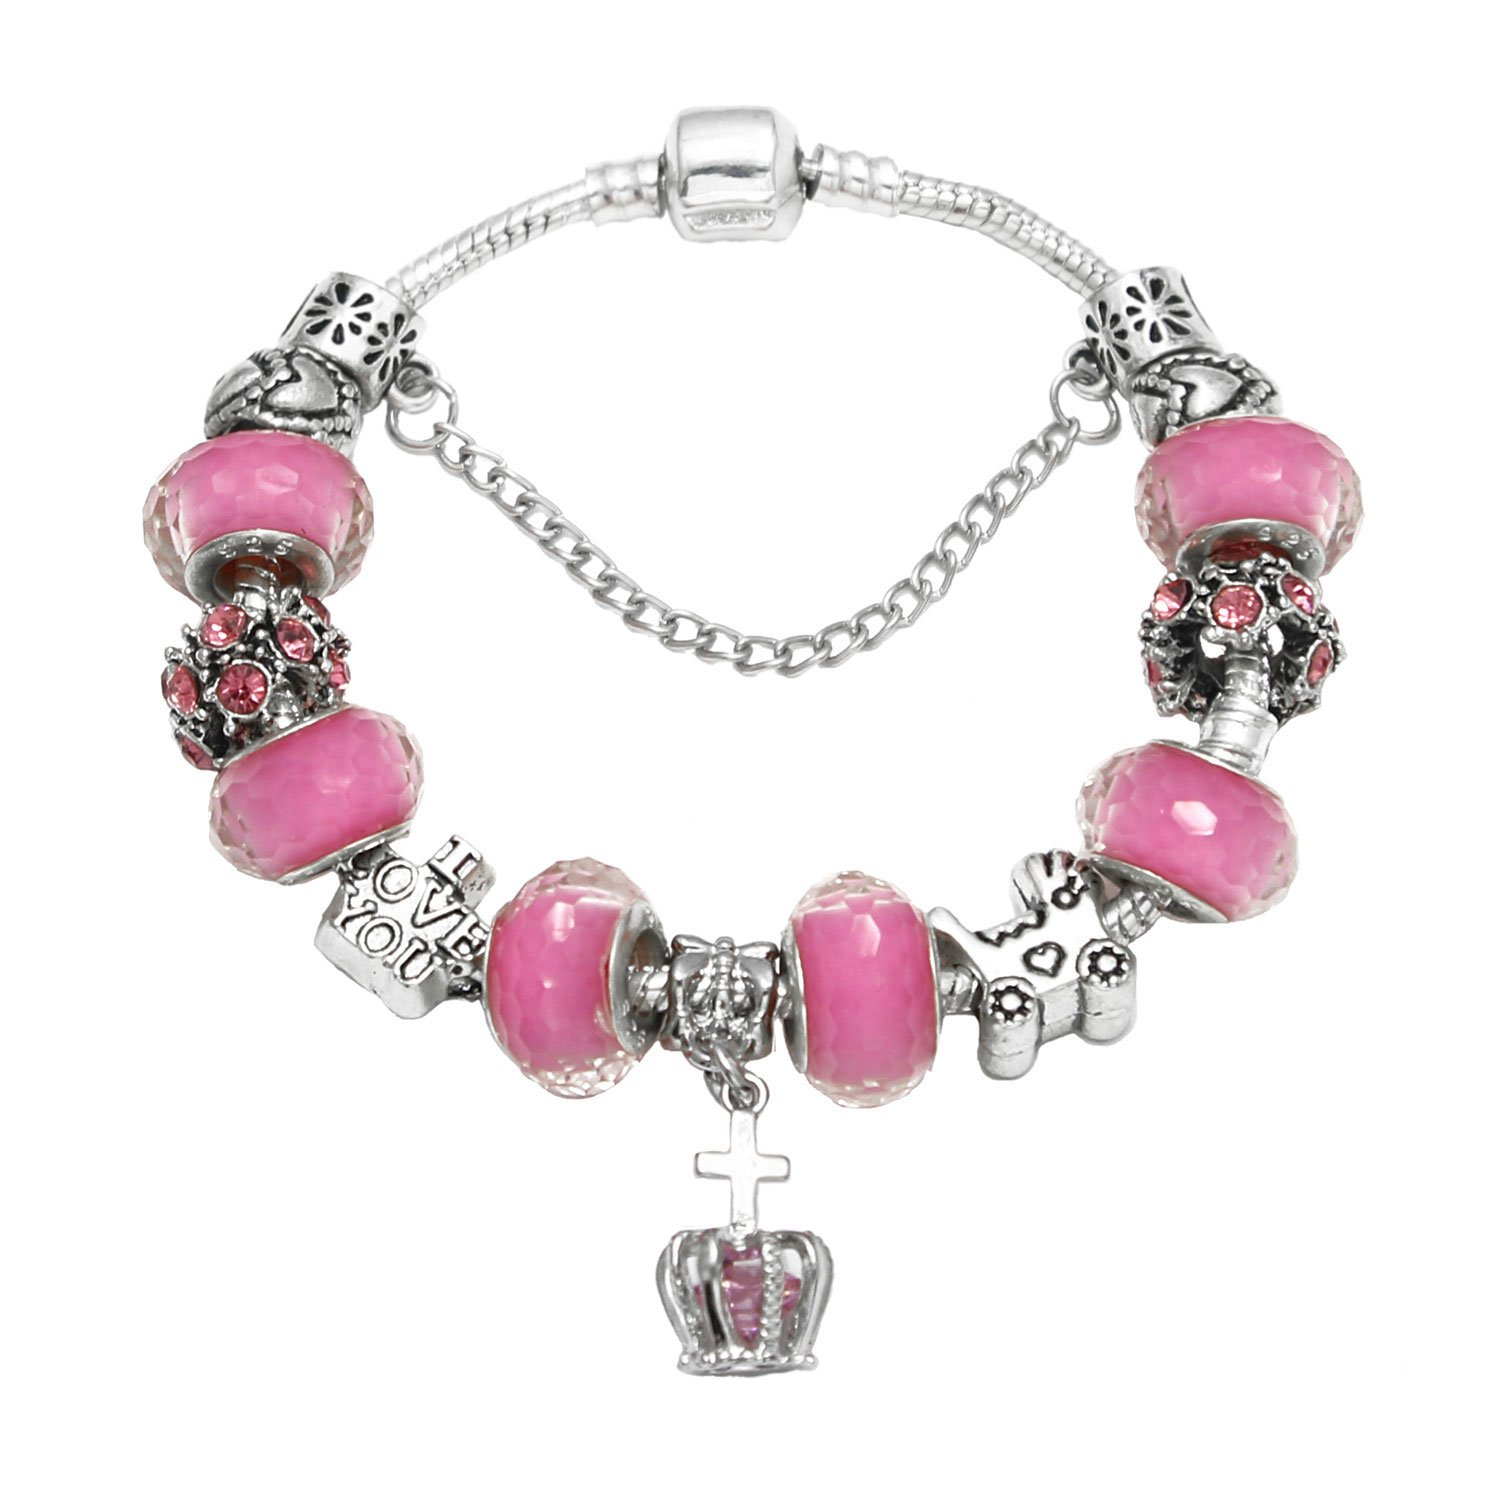 HEWIC I Love You Charm Bracelet Gift Silver Plated Snake Chain DIY Pink Glass Beads Heart Carved Strand Bracelet For Women Girls ZW010